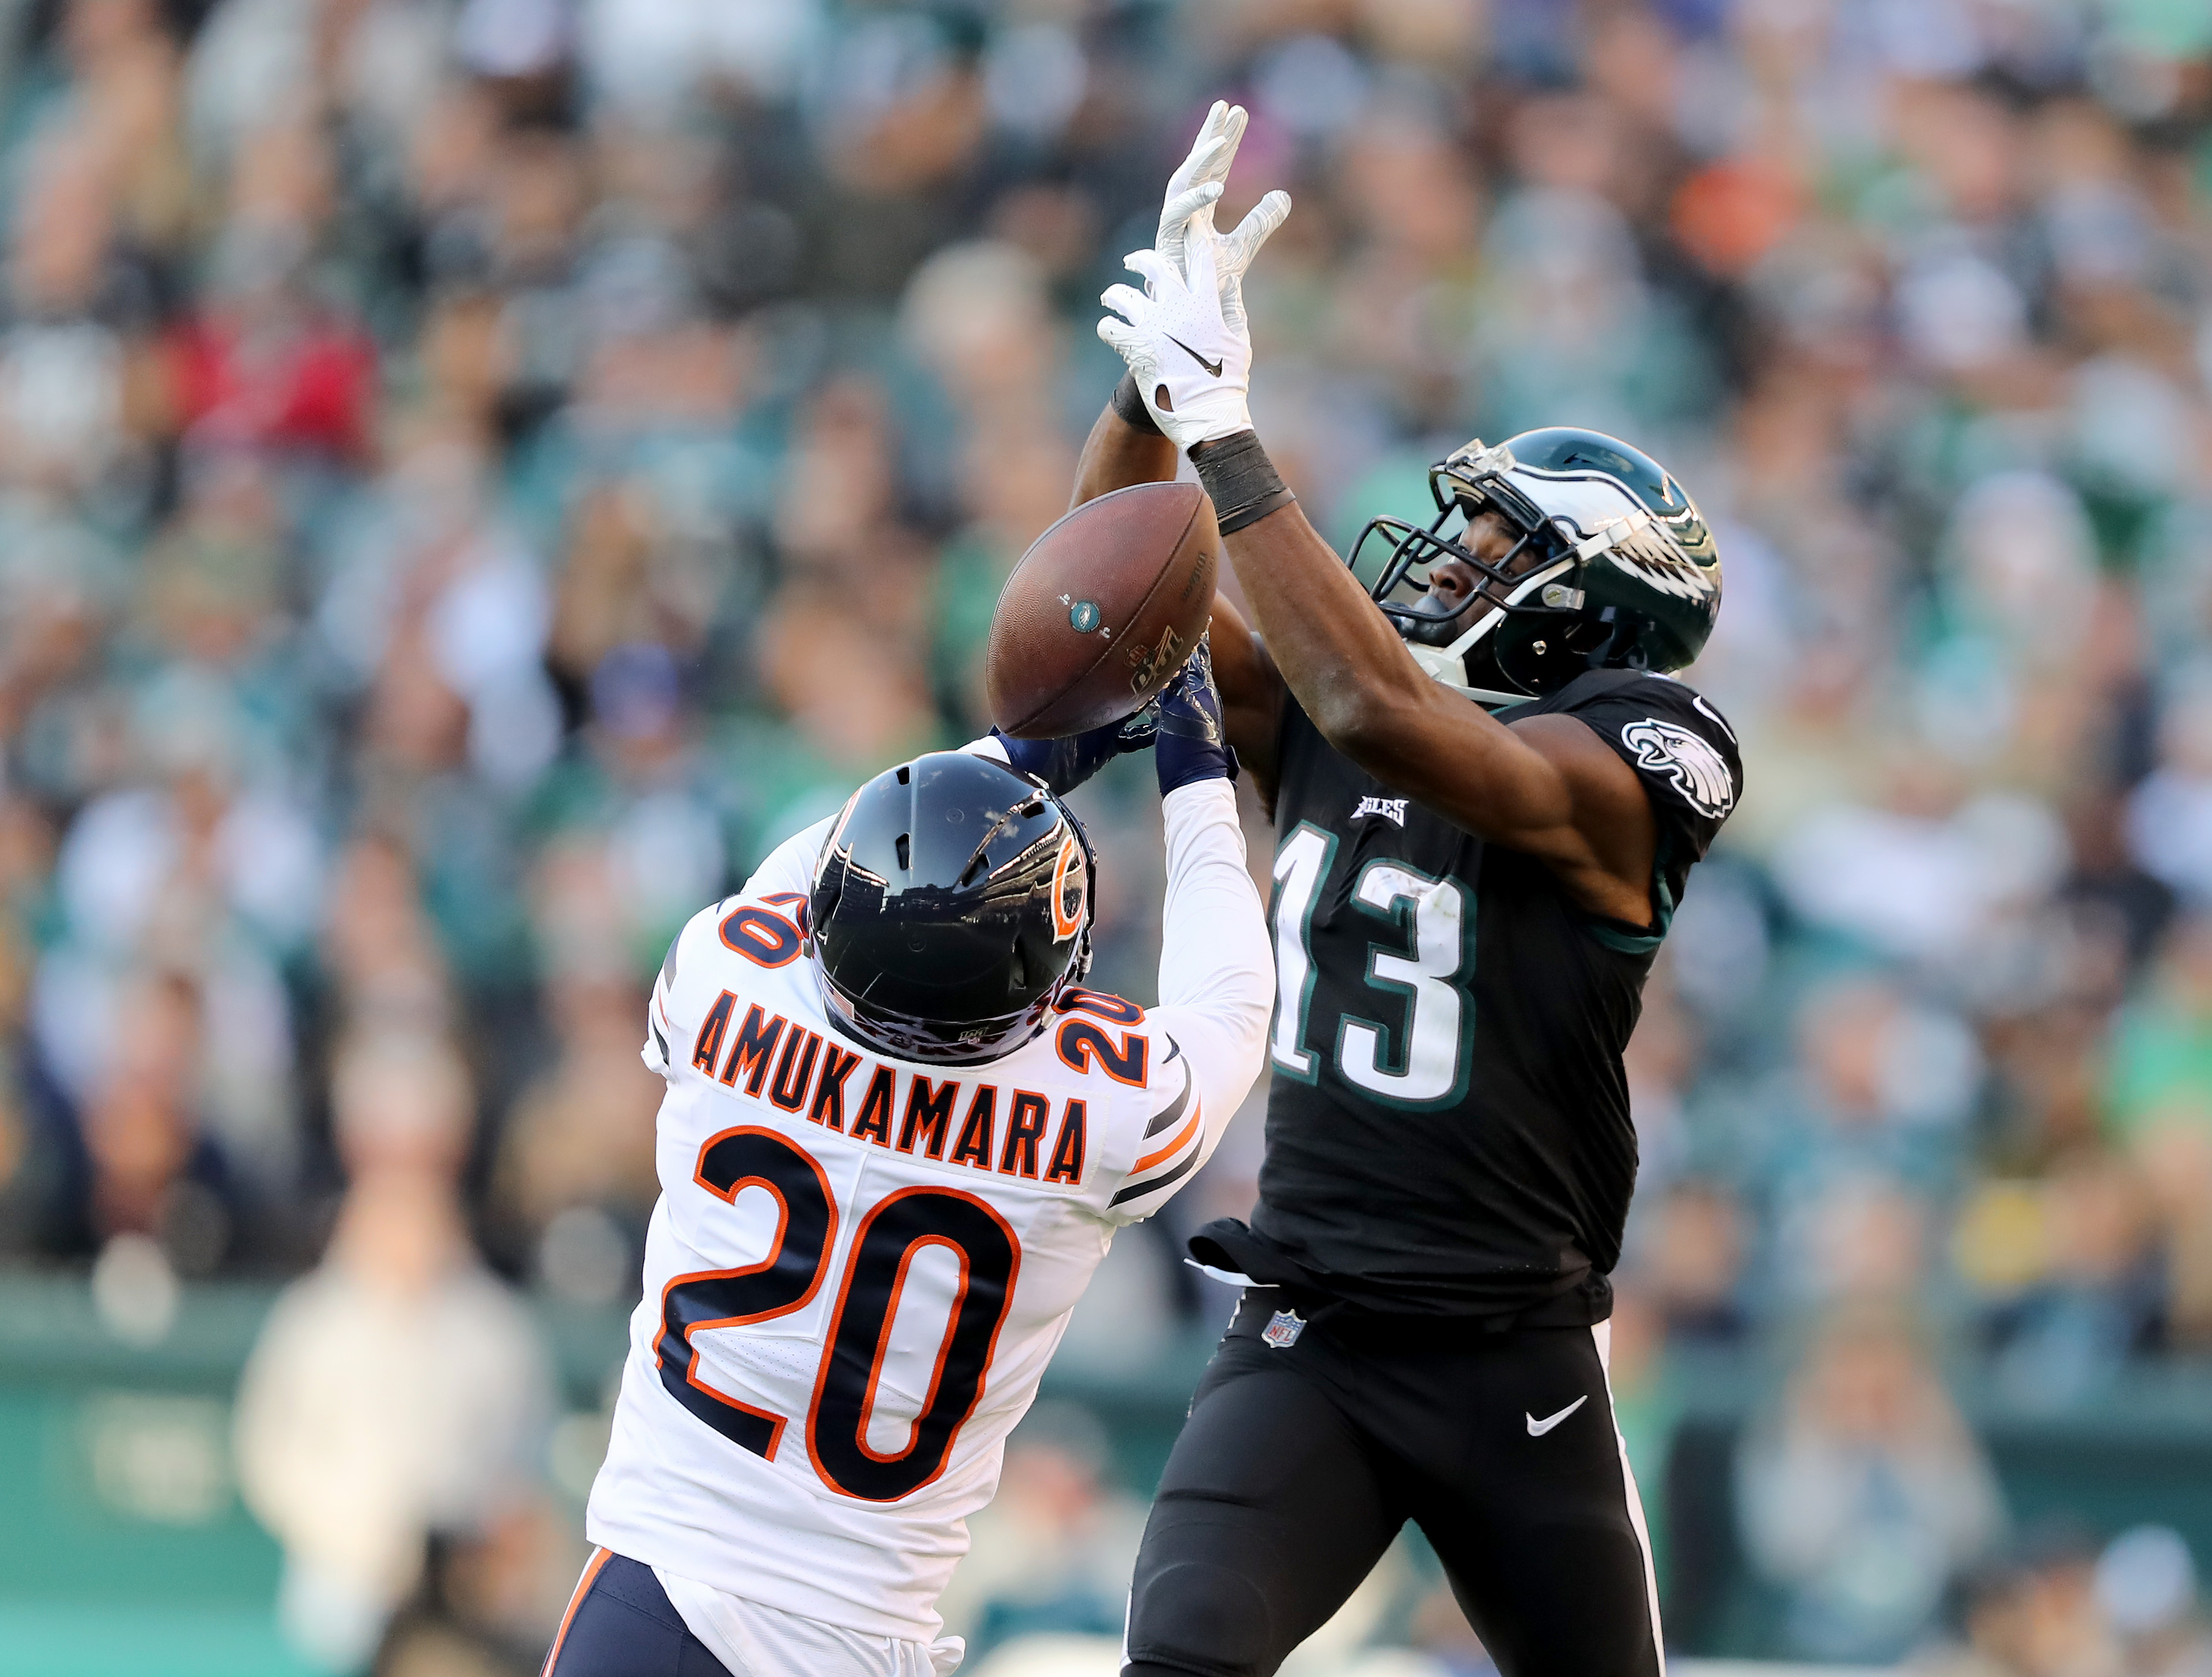 Bears cornerback Prince Amukamara breaks up a pass against the Eagles.